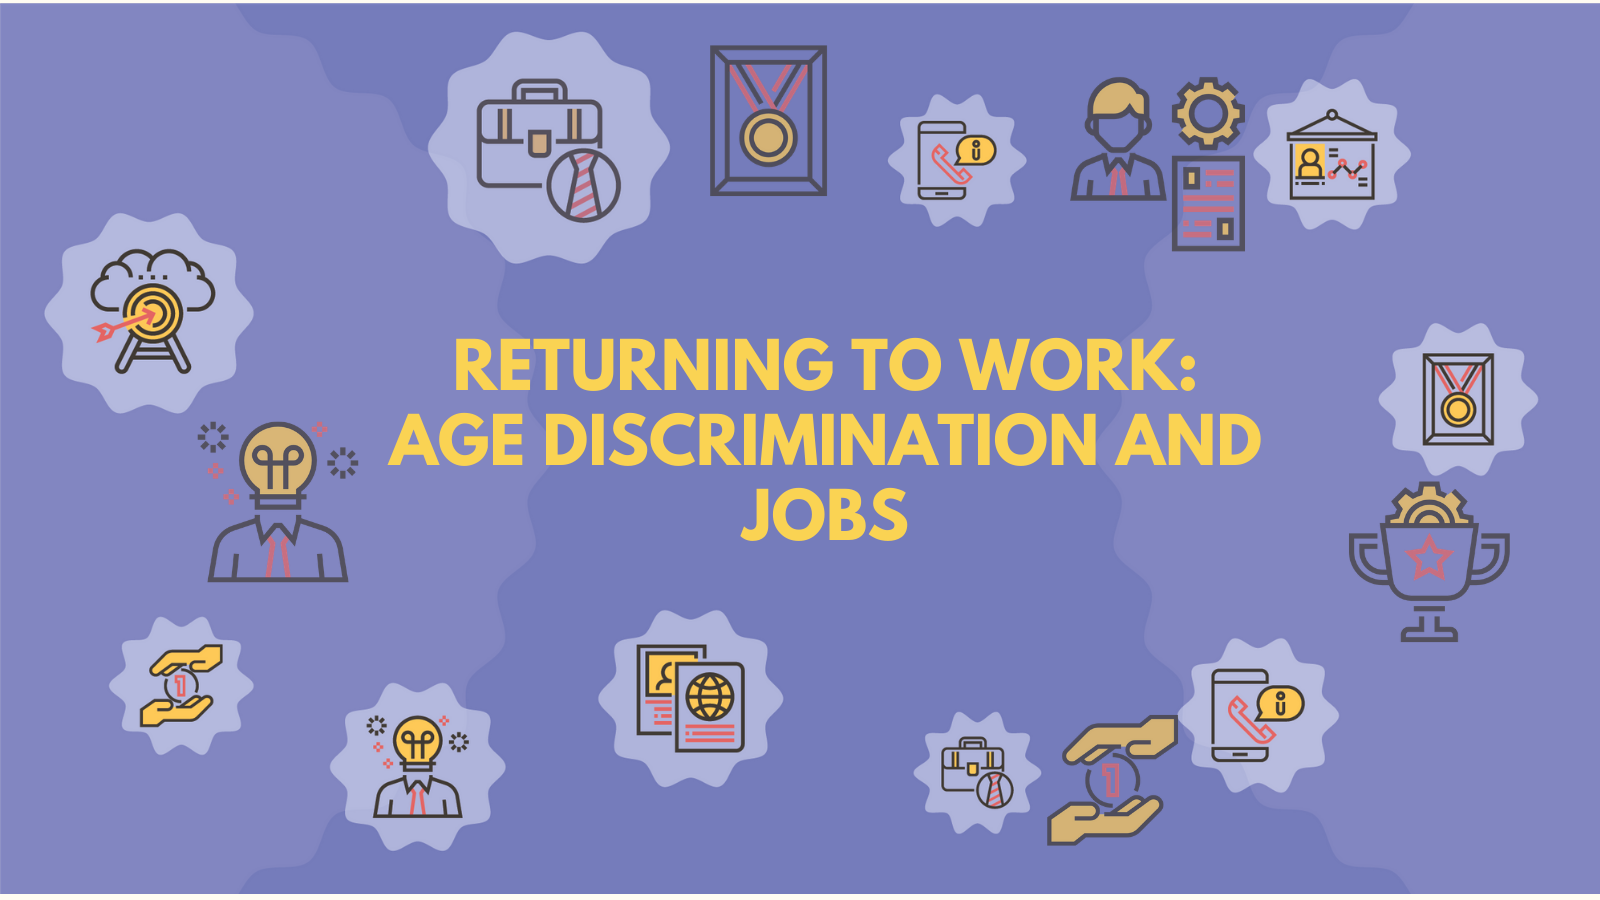 Returning to work: age discrimination and jobs